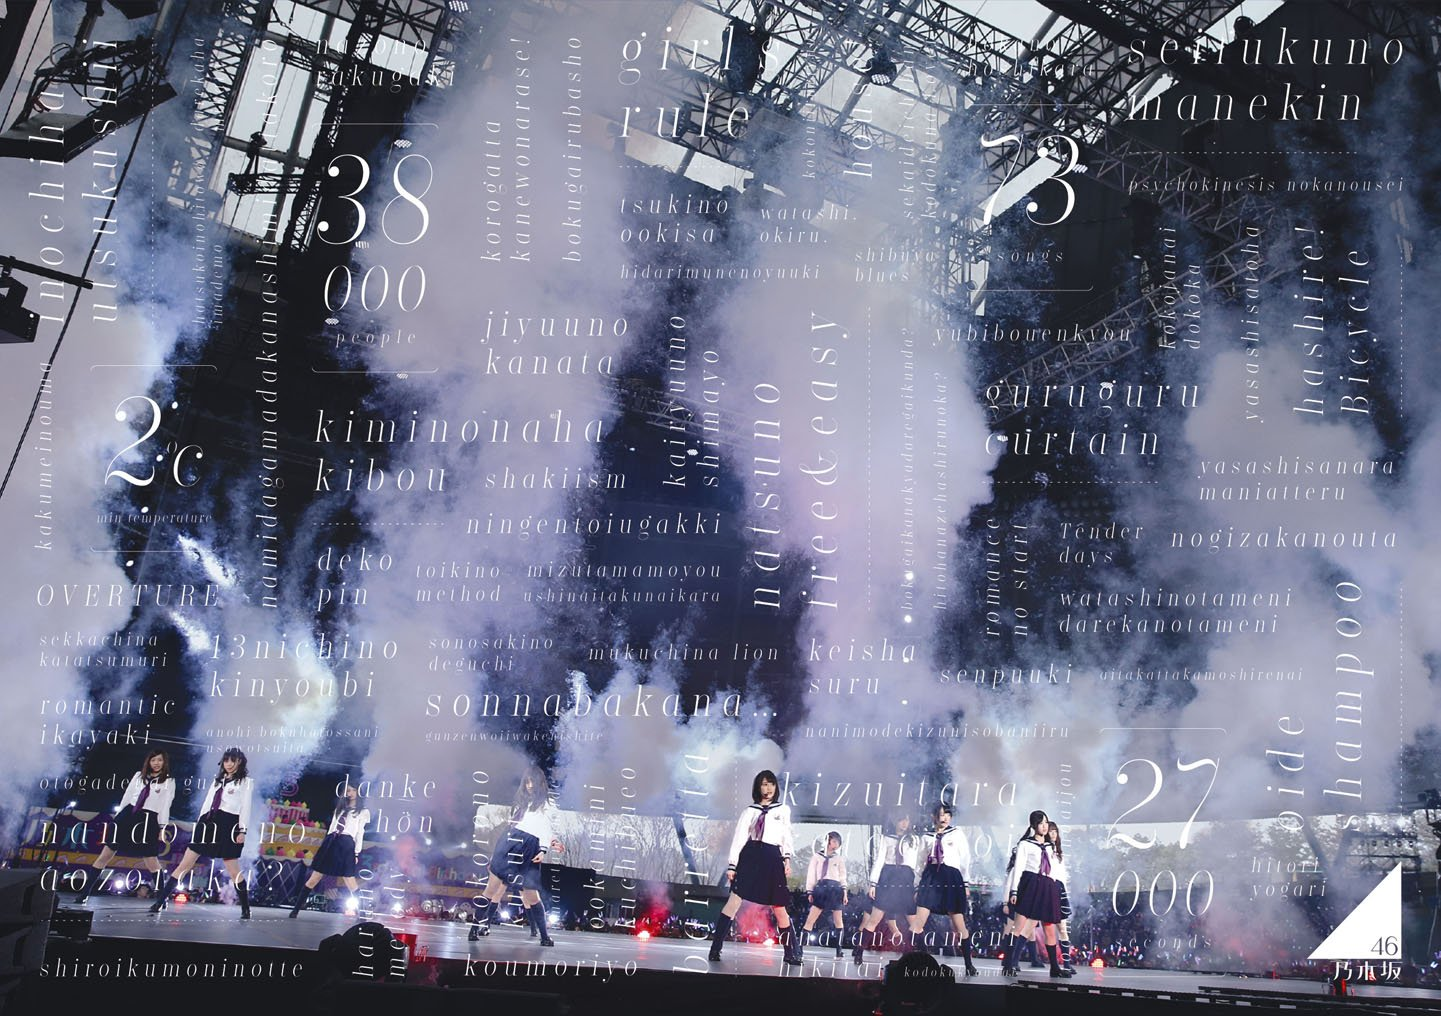 乃木坂46 3rd YEAR BIRTHDAY LIVE 2015.2.22 SEIBU DOME [Blu-ray] B01EVCOKFS